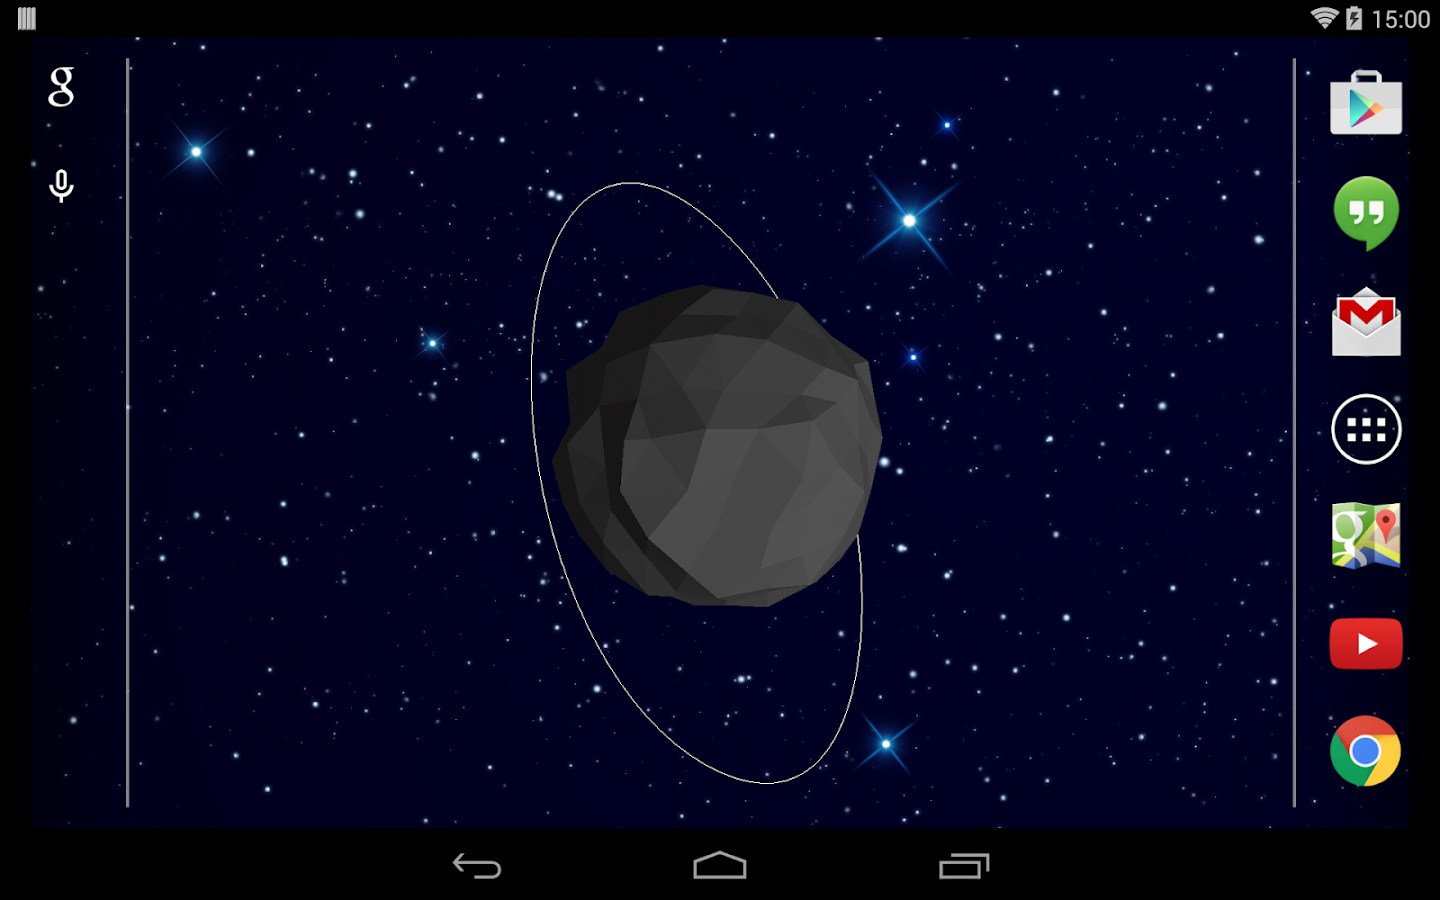 Asteroid live wallpaper - Android Apps on Google Play